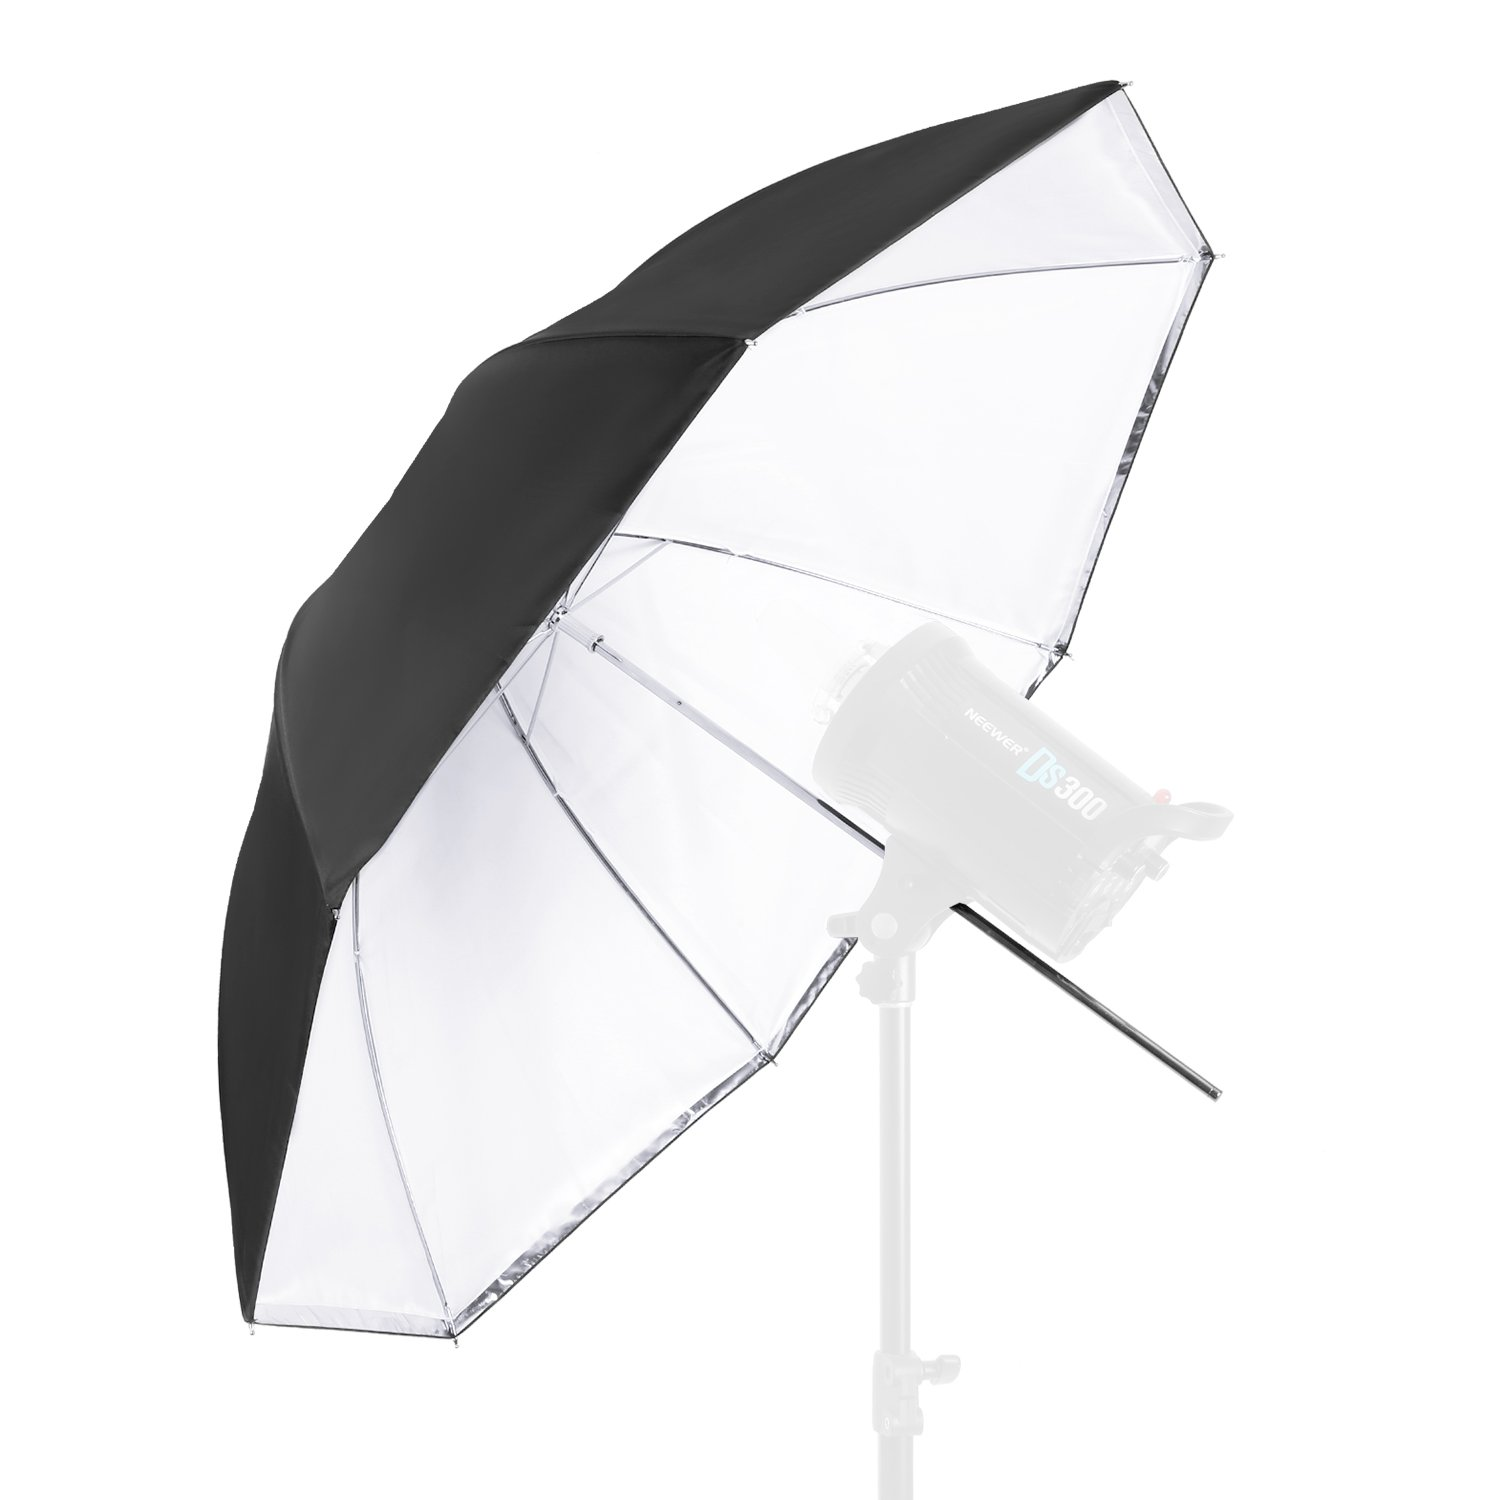 Neewer 59 inches/150 Centimeters Detachable Photography Lighting Umbrella - White Convertible Umbrella with Removable Black Cover and Reflective Silver Backing 10088119